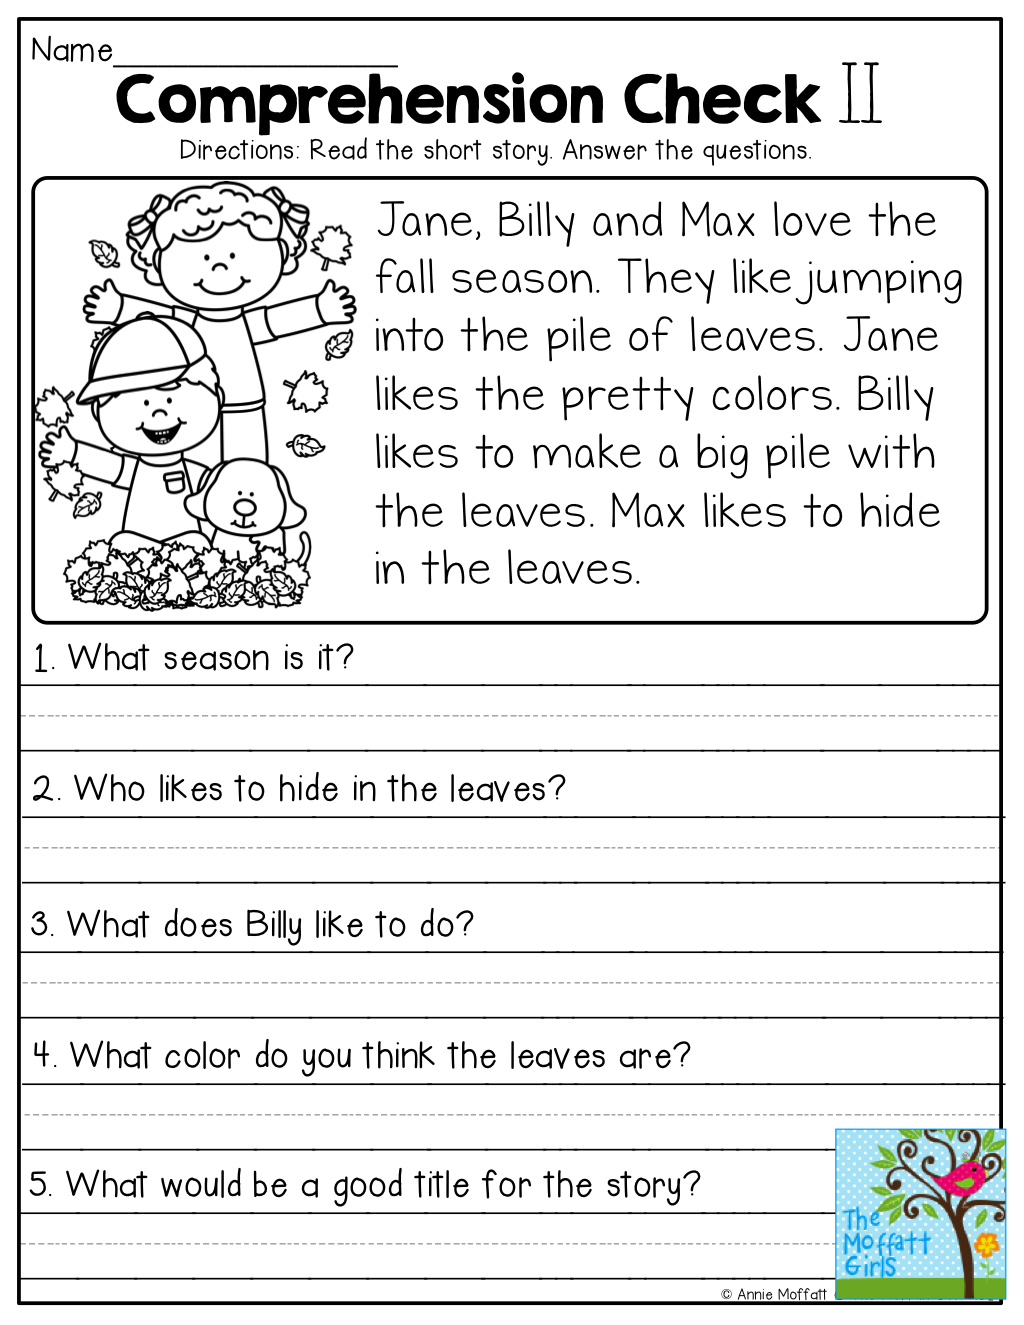 Worksheet 3rd Grade Reading Comprehension Stories comprehension checks and so many more useful printables best of read the simple story answer questions tons great to help with grade level skills